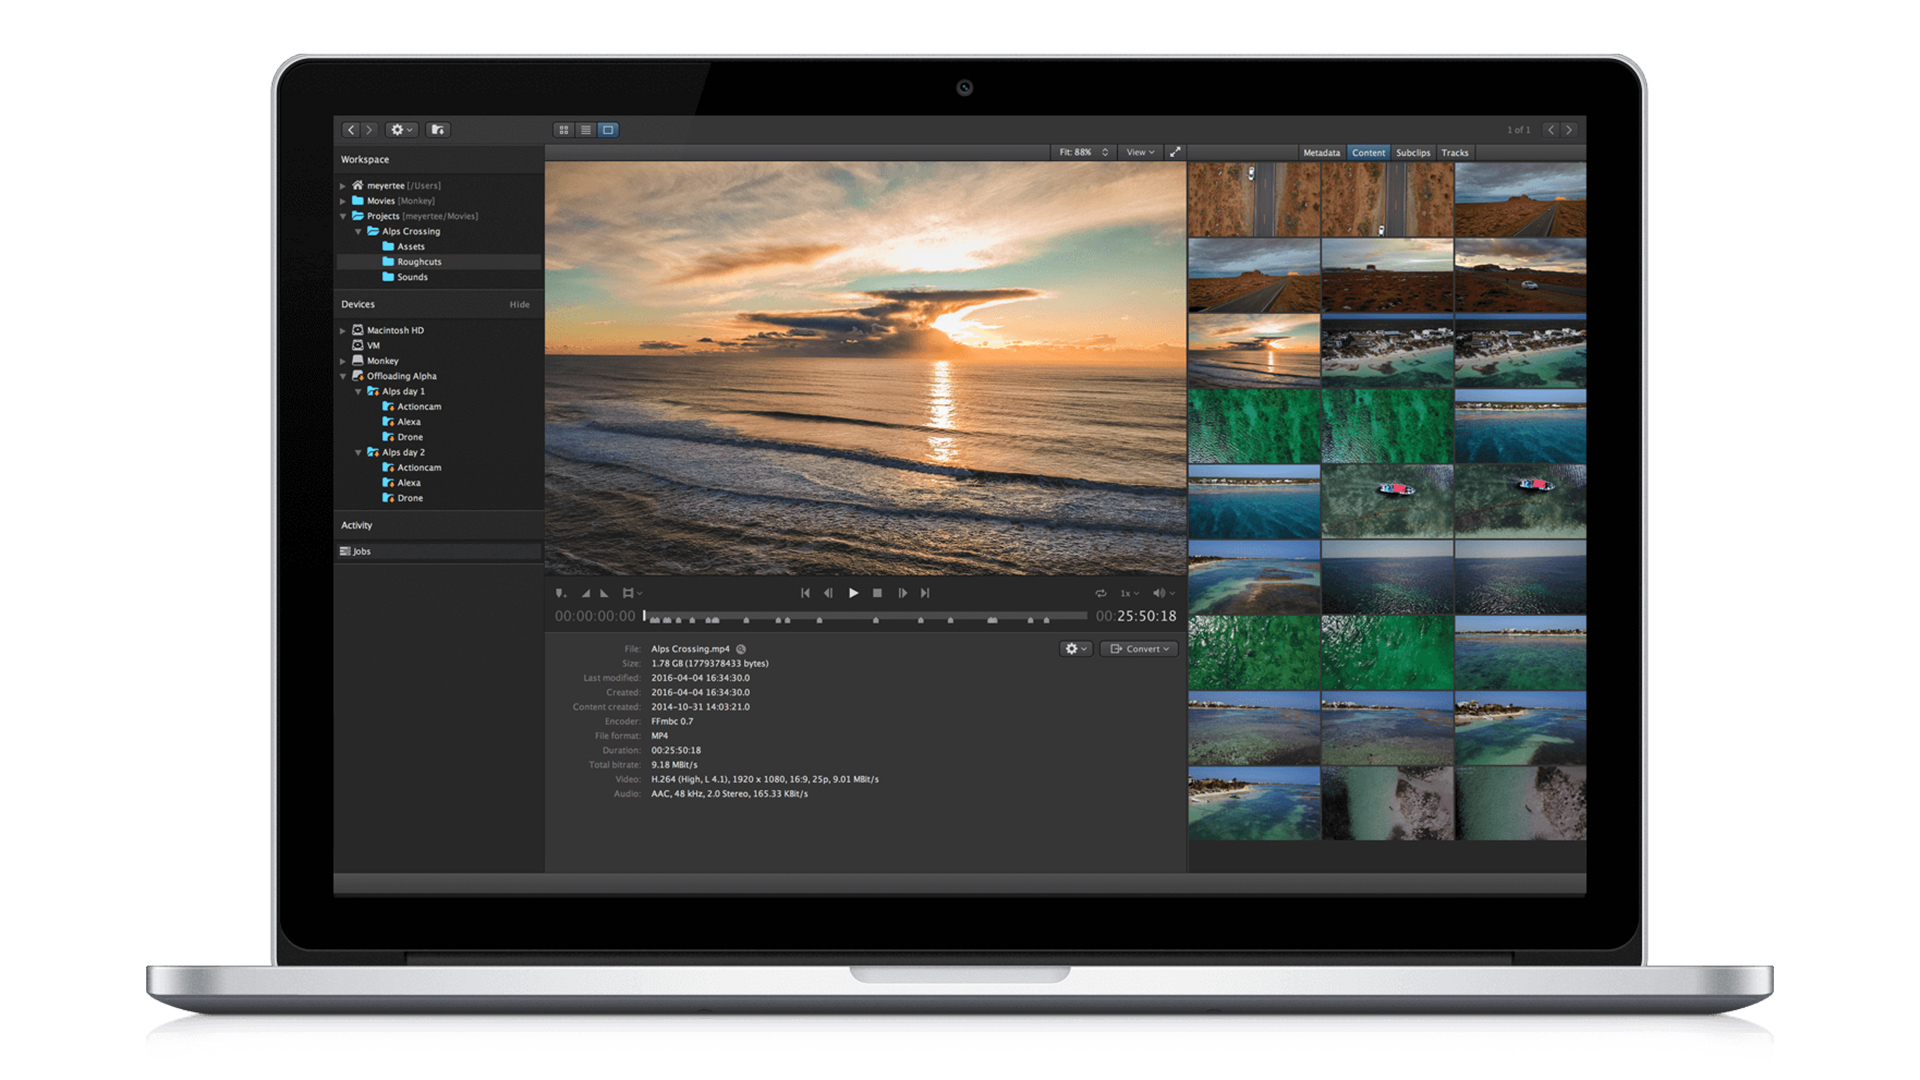 Kyno by Lesspain software has been updated to version 1.8 with DaVinci Resolve compatibility.Image: Lesspain Software.